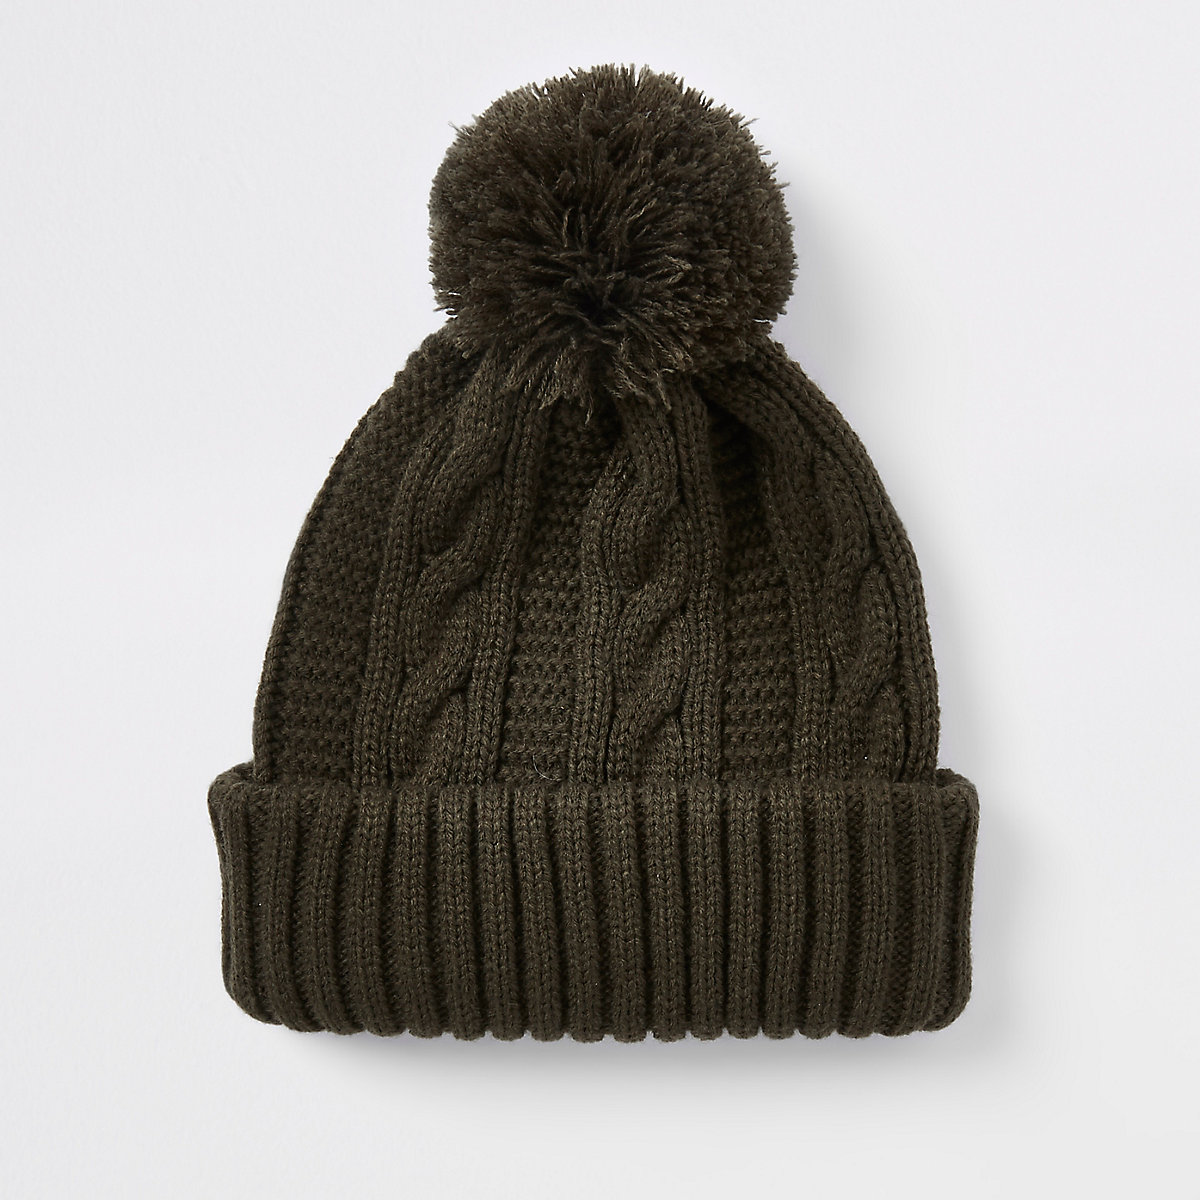 Khaki knit bobble beanie hat